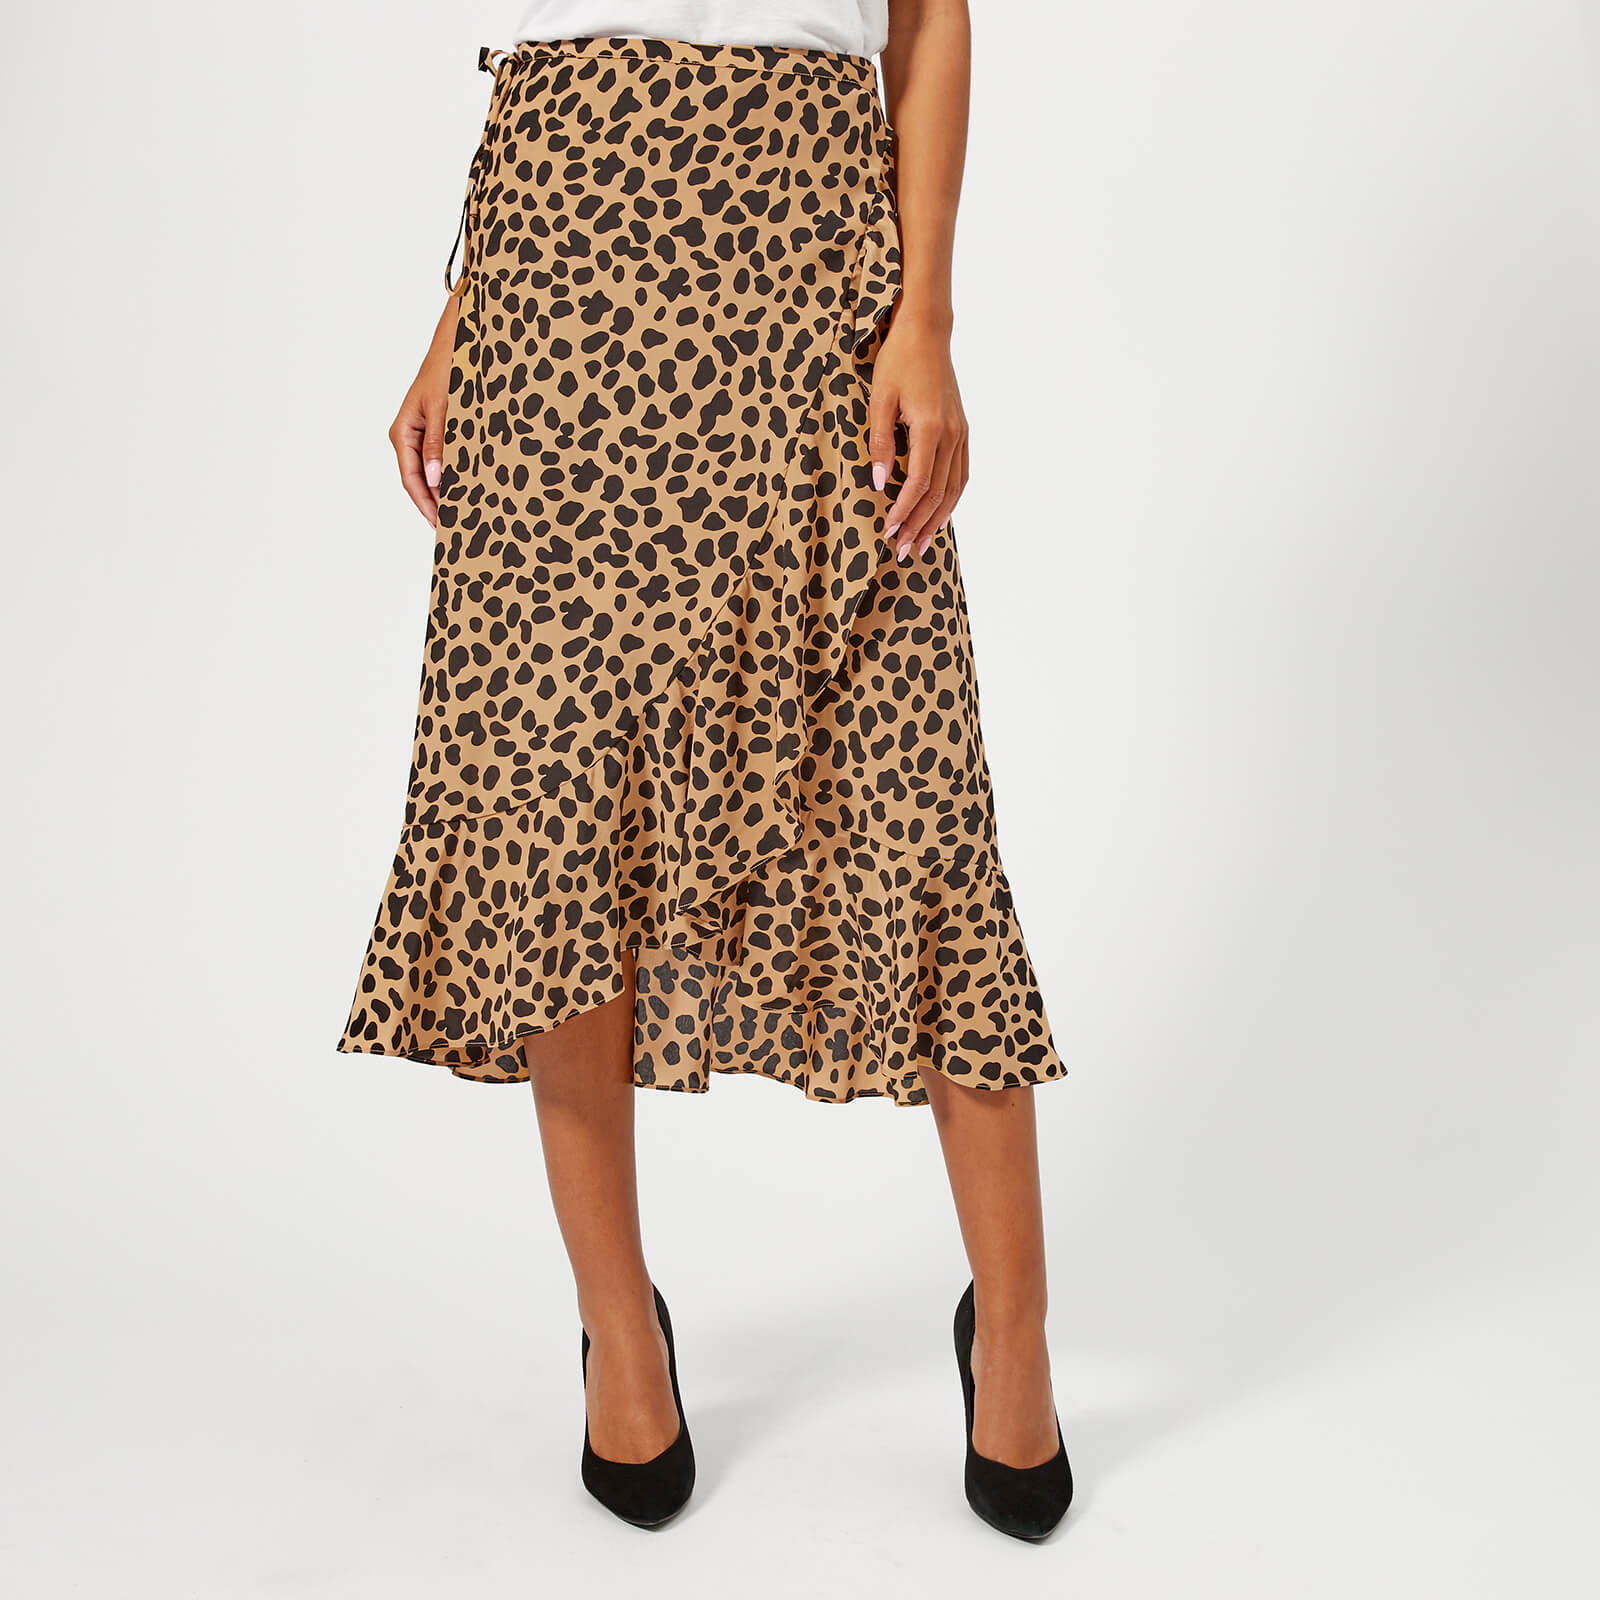 1c2b3d06e656 RIXO Women's Gracie Midi Skirt - Spot Leopard - Free UK Delivery over £50